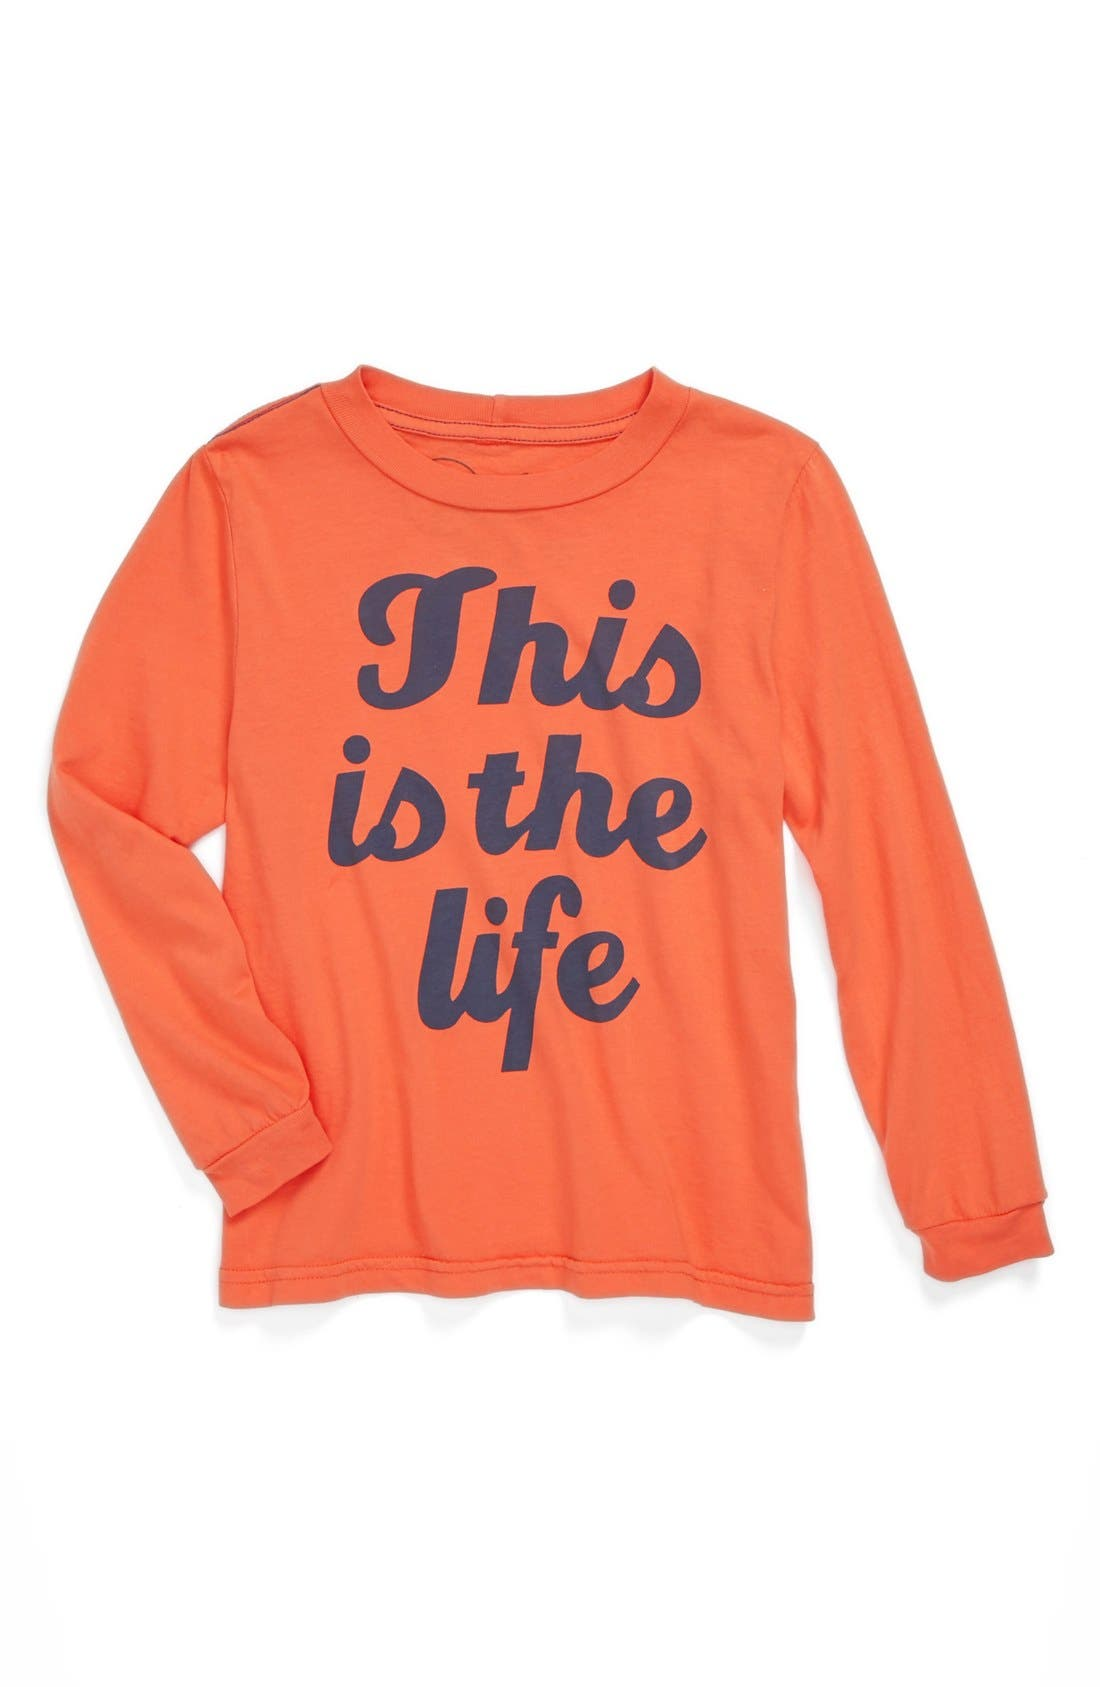 Alternate Image 1 Selected - Peek 'This Is the Life' T-Shirt (Toddler Boys, Little Boys & Big Boys)